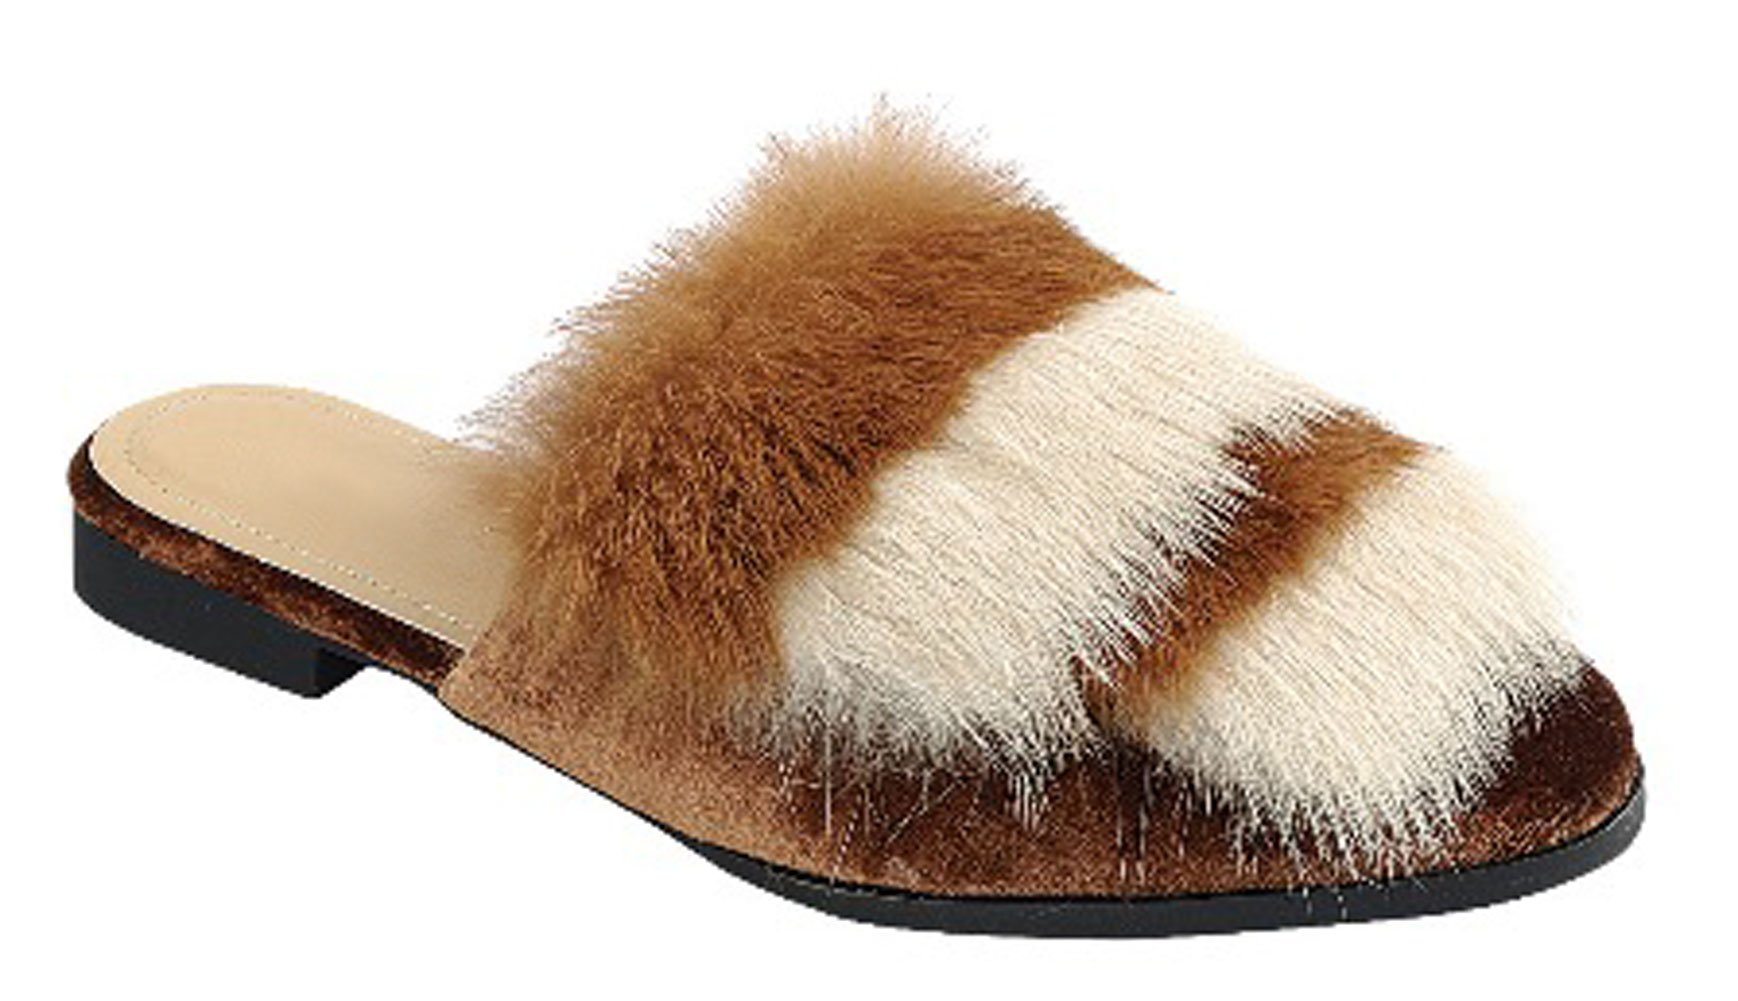 Best Two Tone Tan Mule Fur Fuzzy Flat Heeled Closed Toe Slipon Designer Beach Fashion Ladies Sexy Adult House Bedroom Slipper Shoe Gift Idea Sale for Women Wife Teen Girl (Size 6.5, Tan)